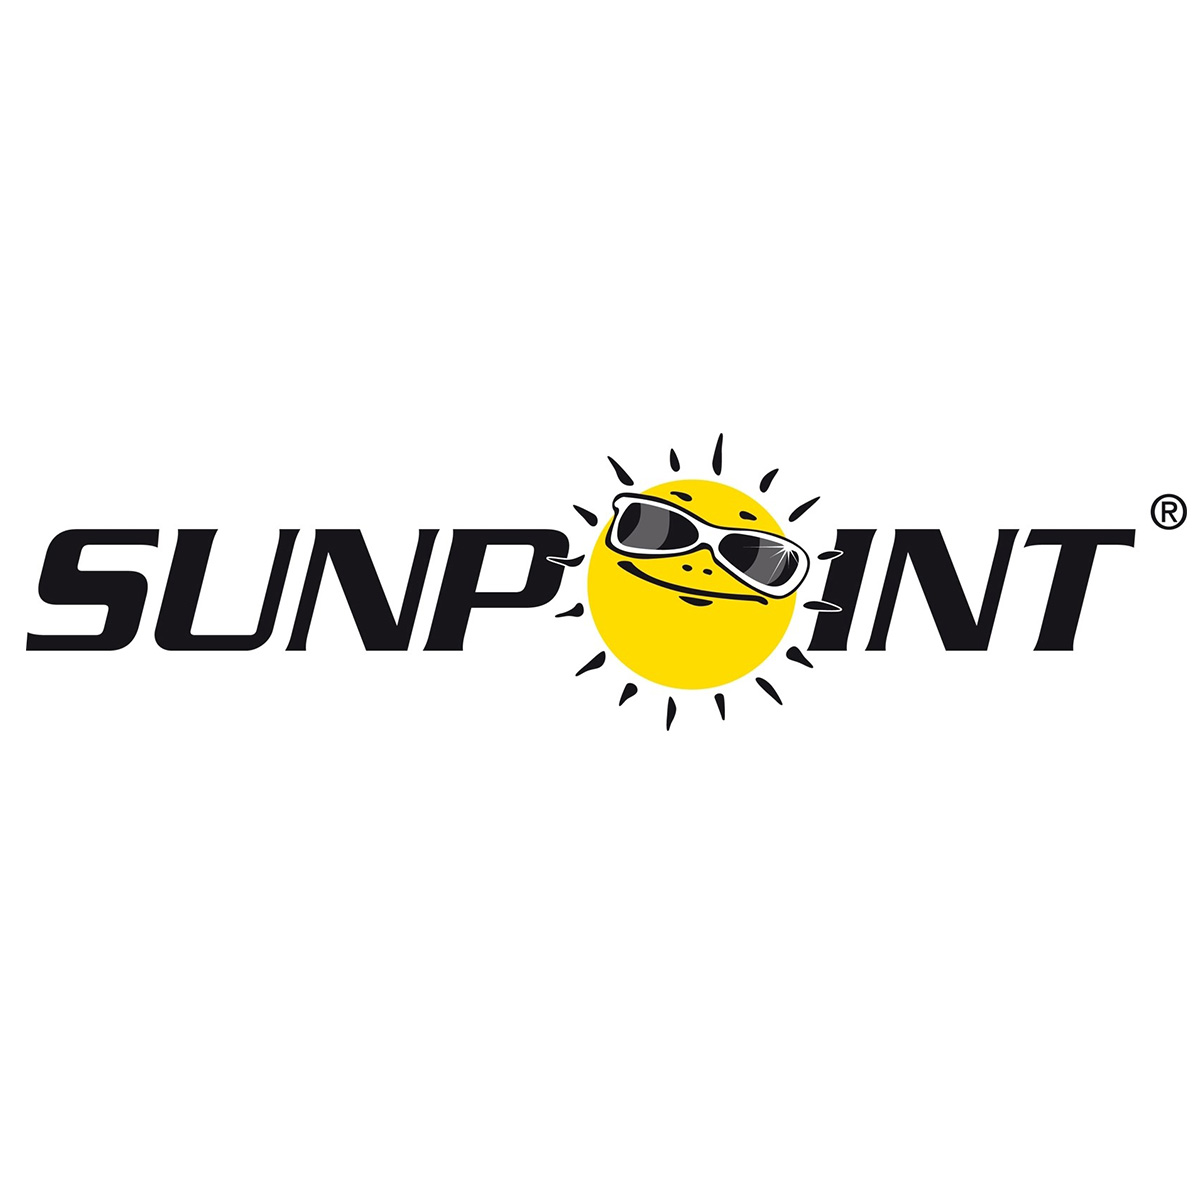 SUNPOINT Beauty & Tanning Studio